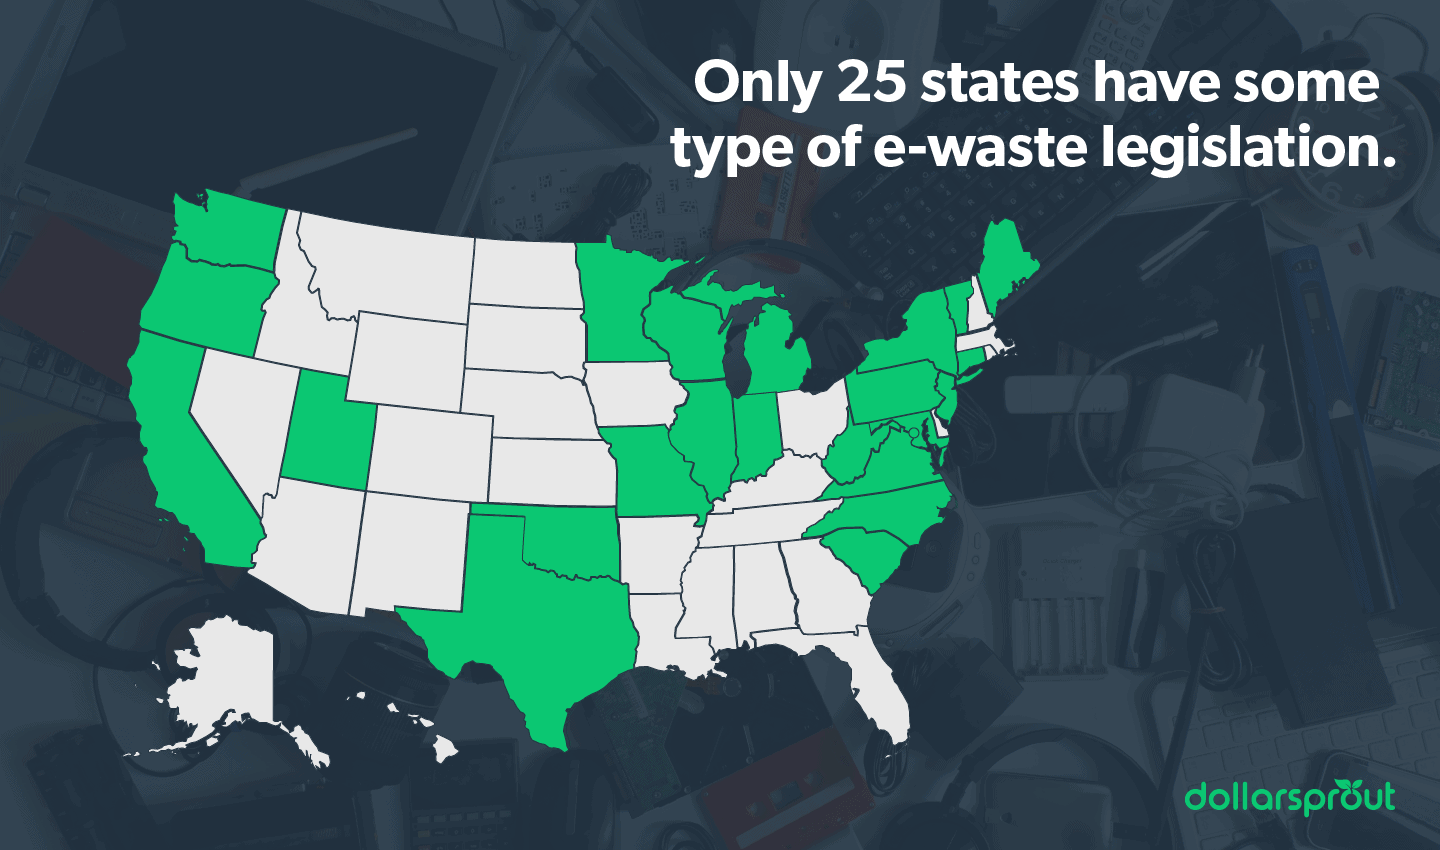 States with some type of e-waste legislation